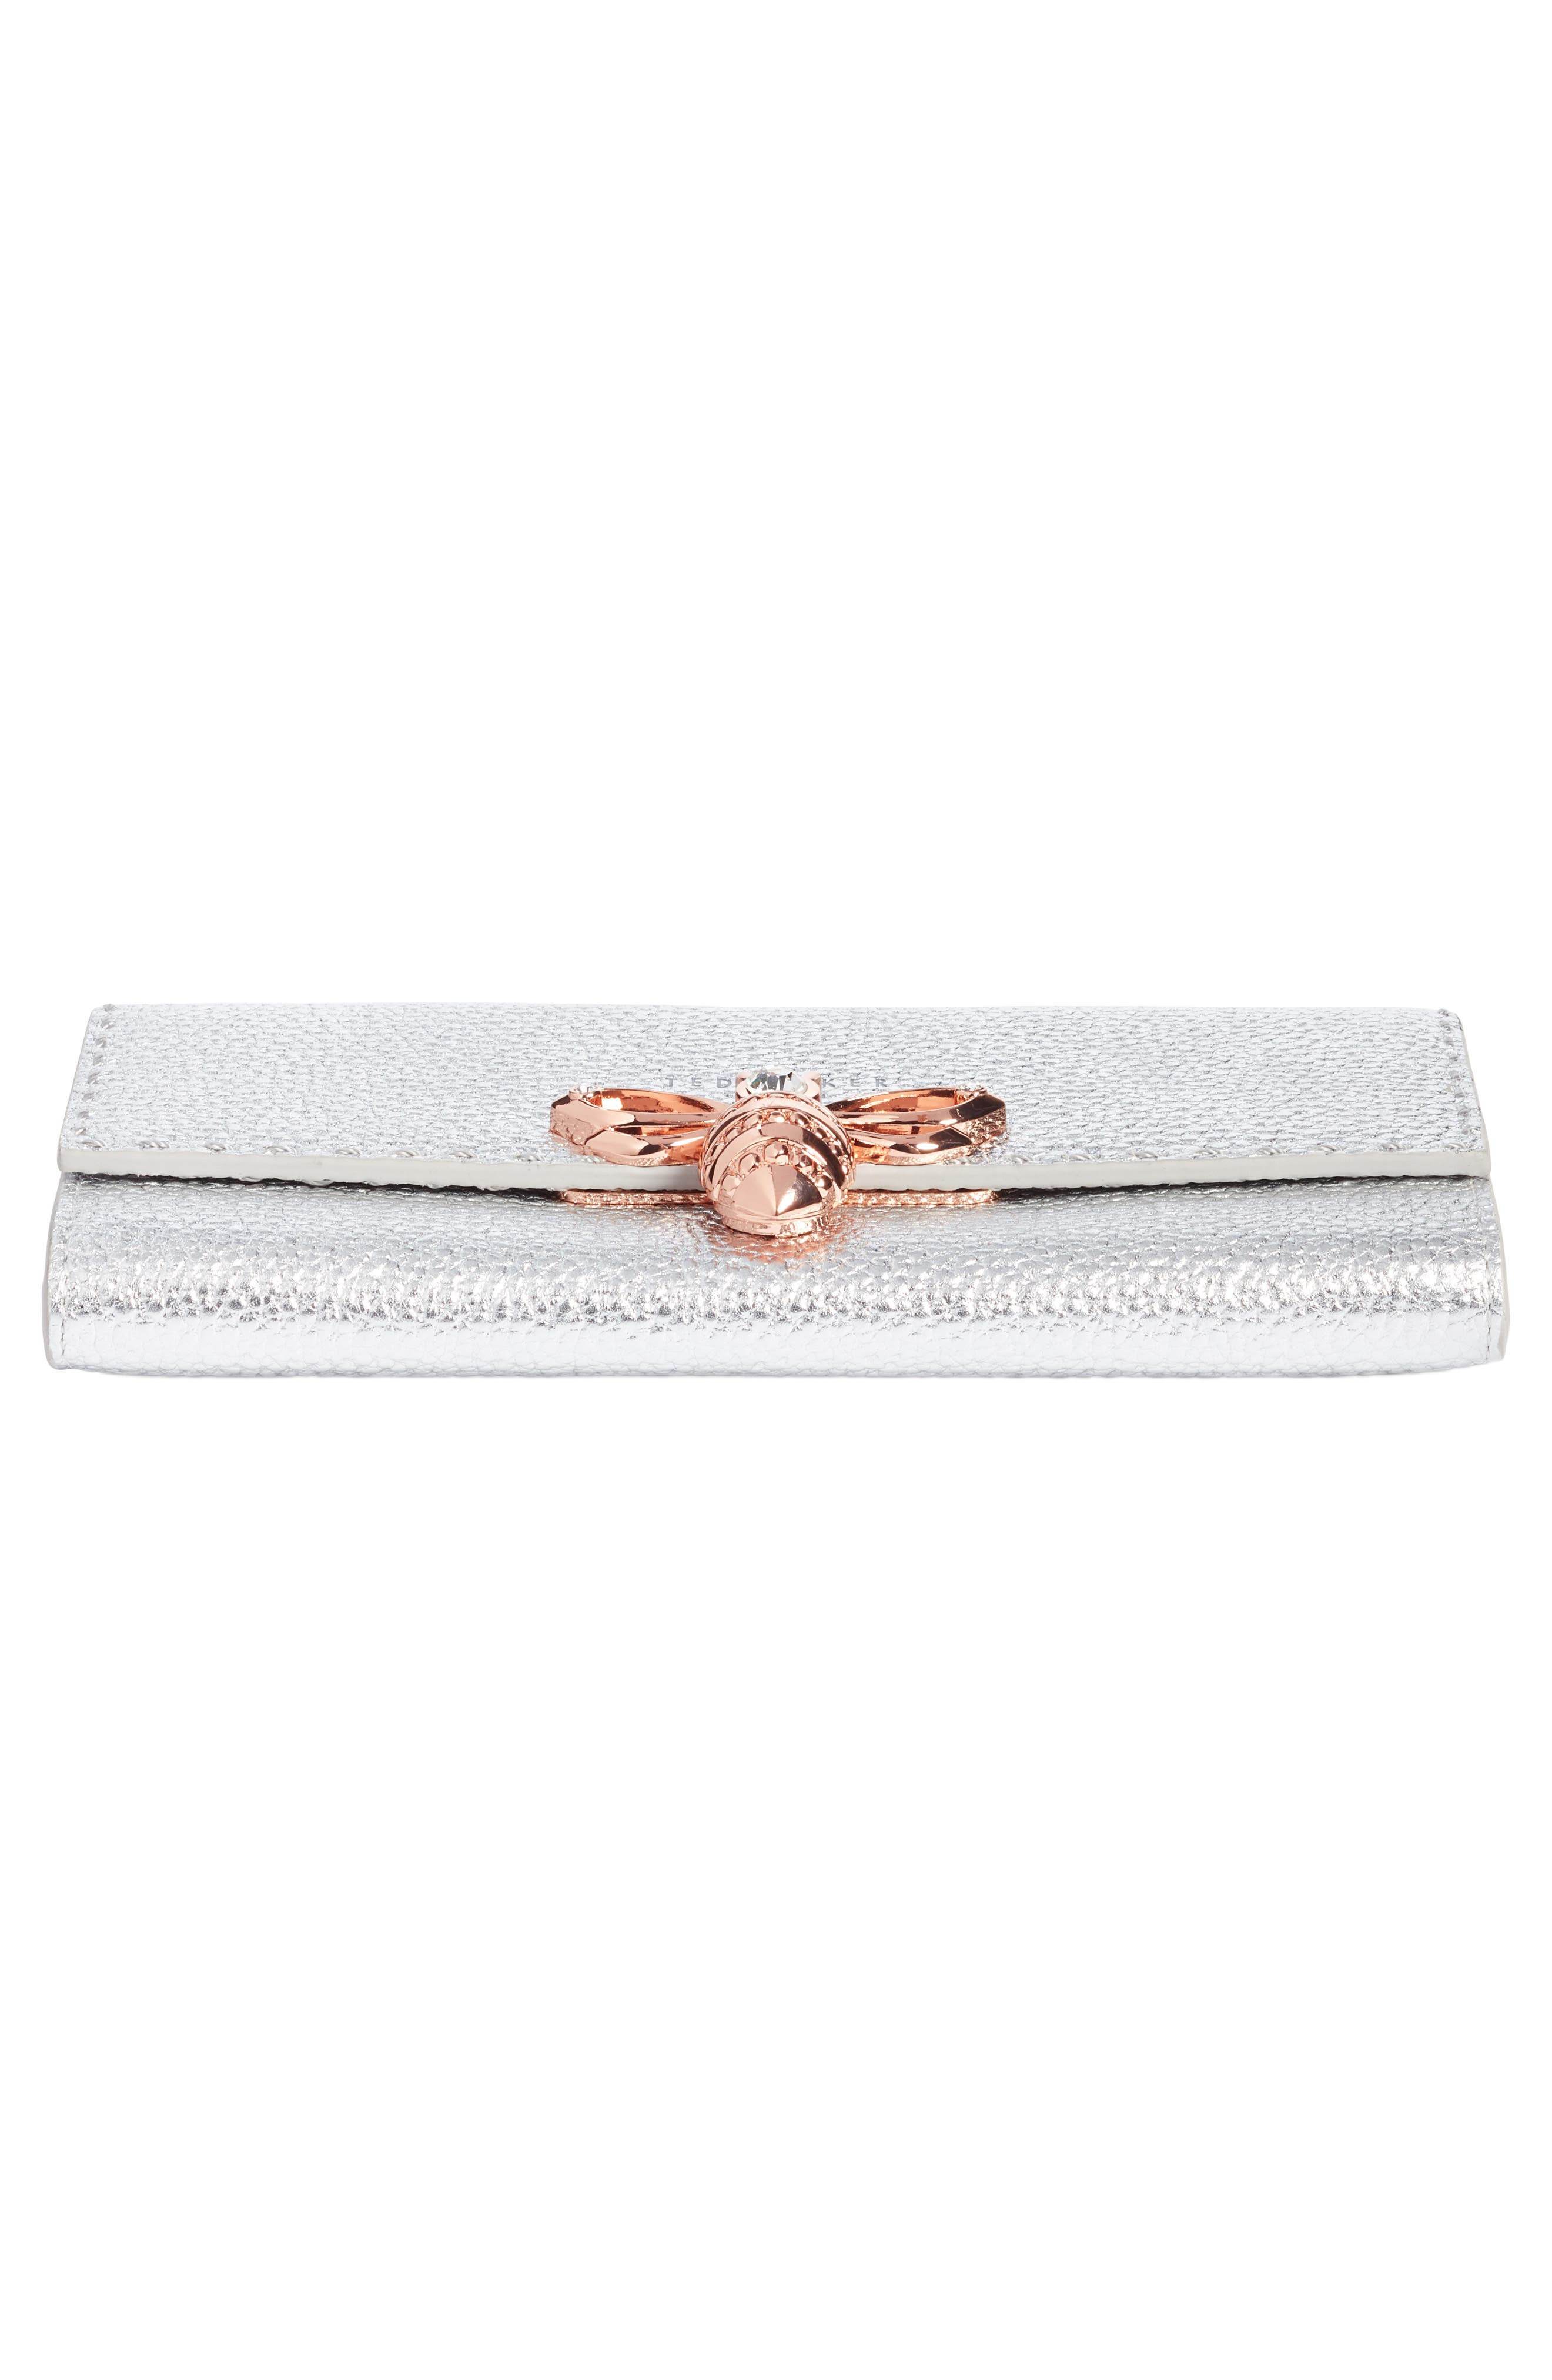 Janese Bee Embellished Matinée Wallet,                             Alternate thumbnail 6, color,                             Silver